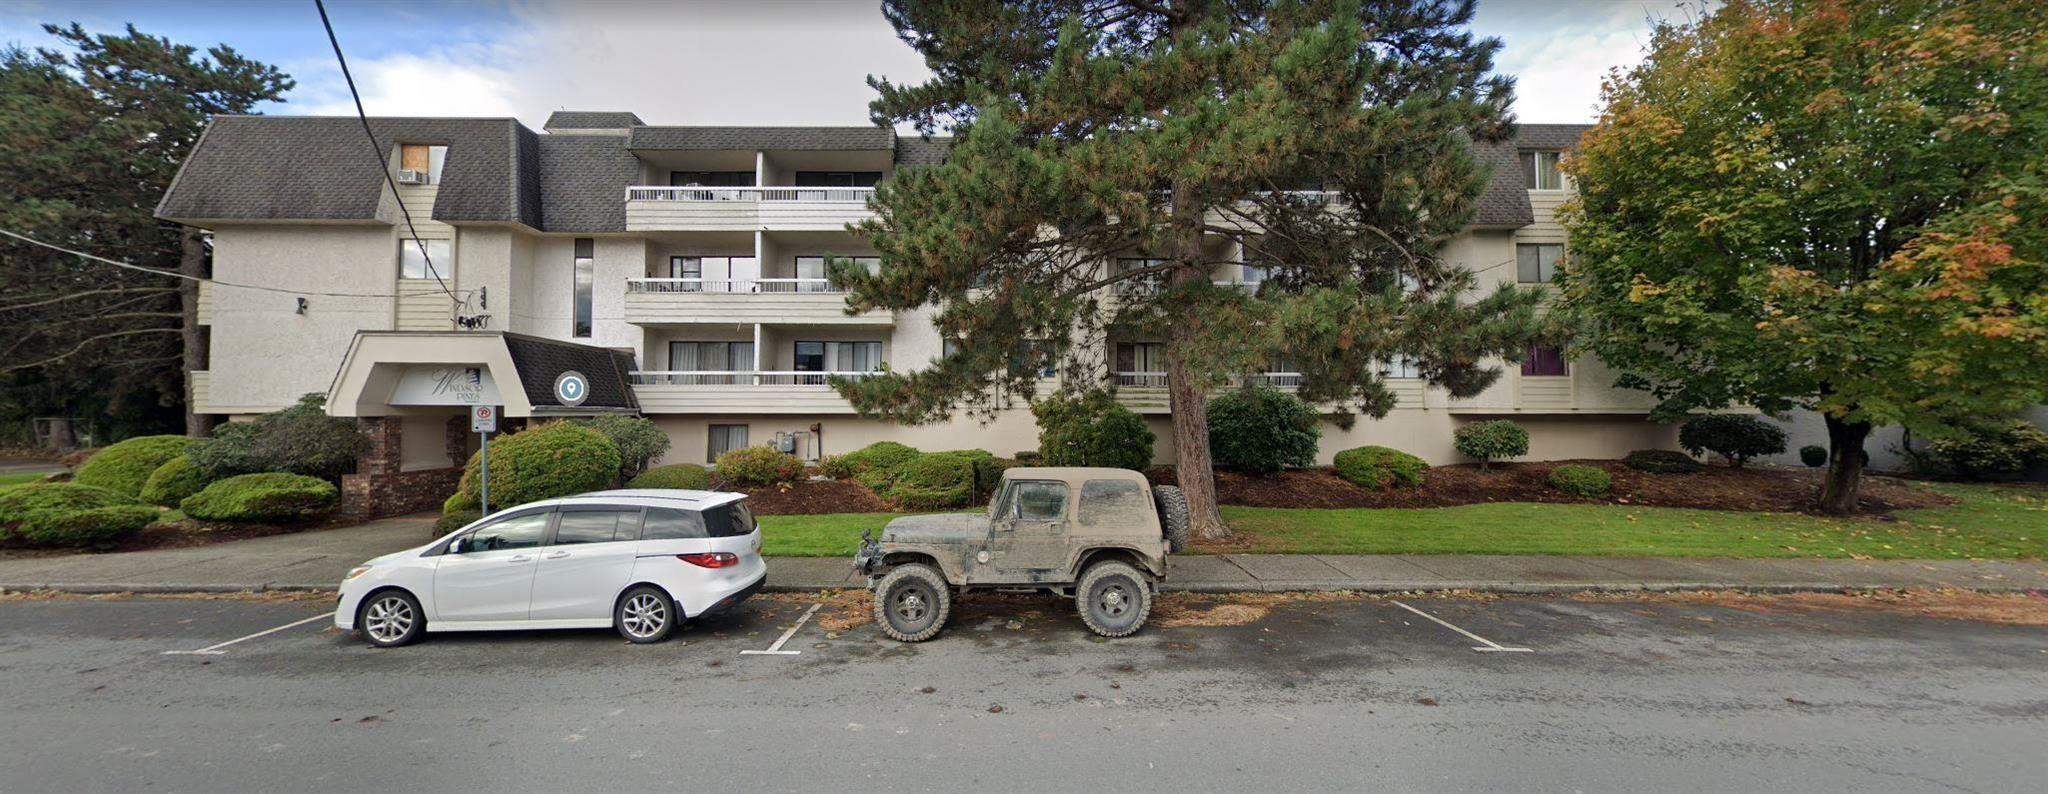 """Main Photo: 110 9477 COOK Street in Chilliwack: Chilliwack N Yale-Well Condo for sale in """"Windsor Pines"""" : MLS®# R2606891"""